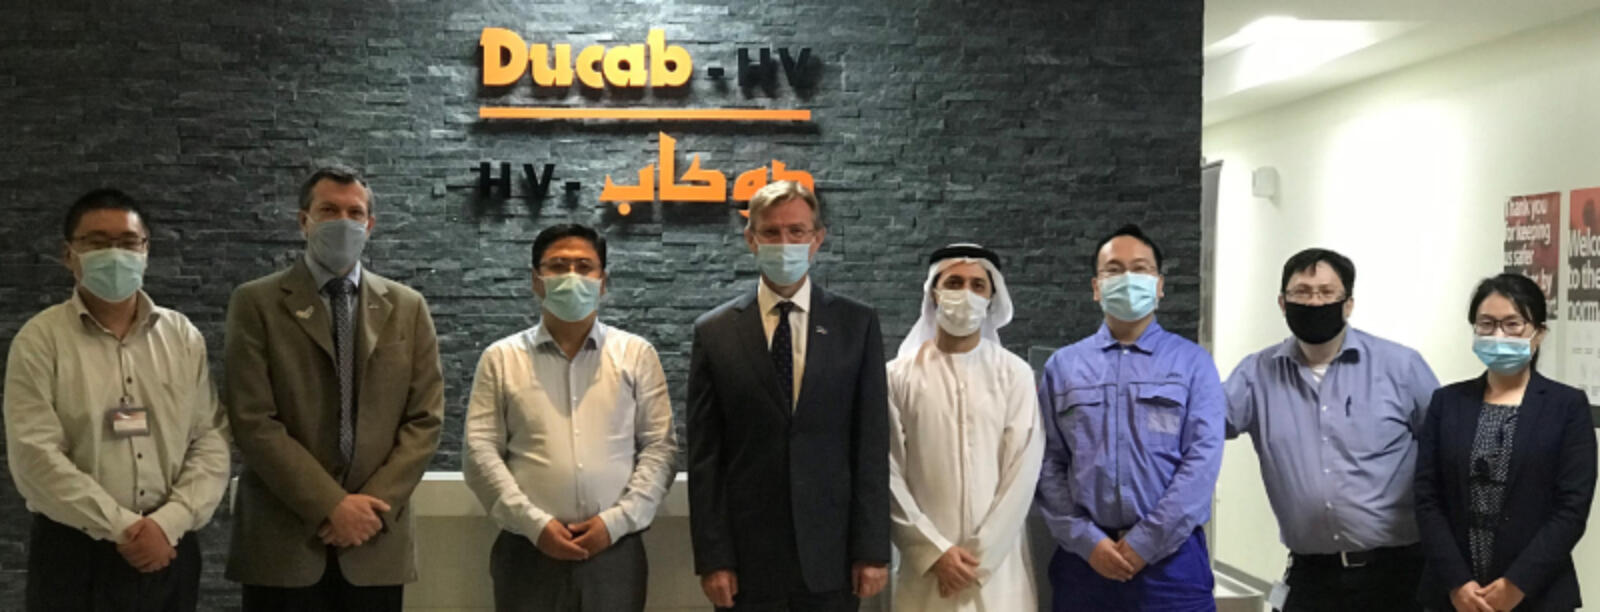 Ducab HV and Shangha